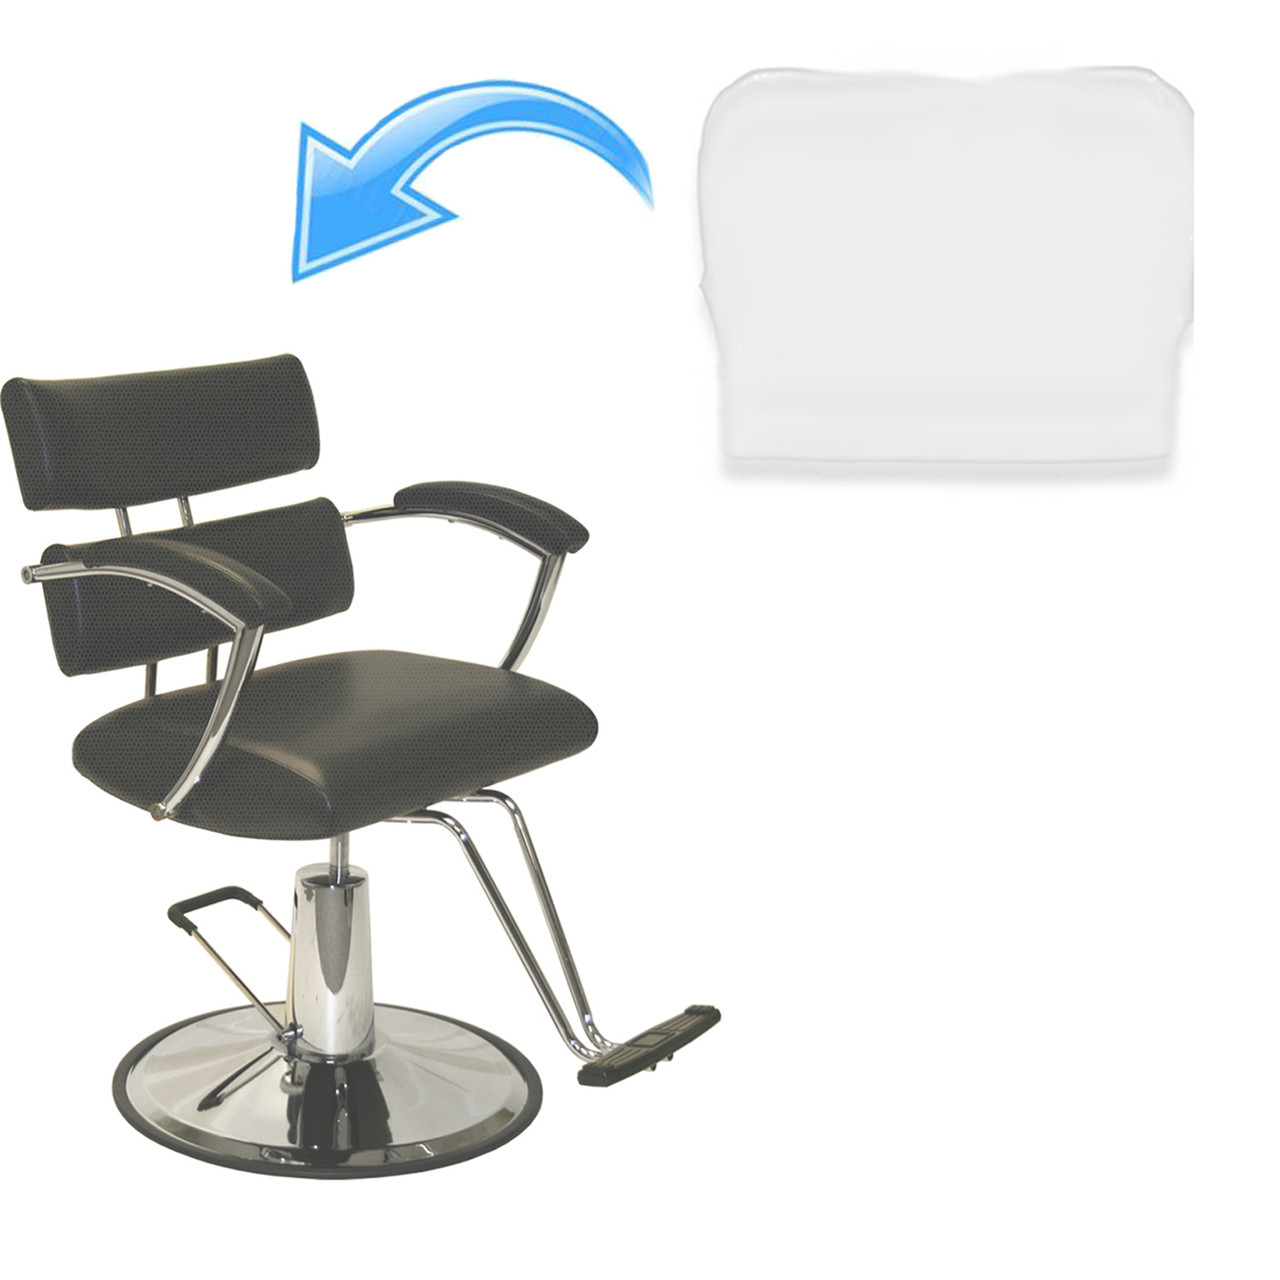 Surprising Protective Chair Cover For Pro 8383 Cc Xl Contemporary Styling Chair Interior Design Ideas Clesiryabchikinfo